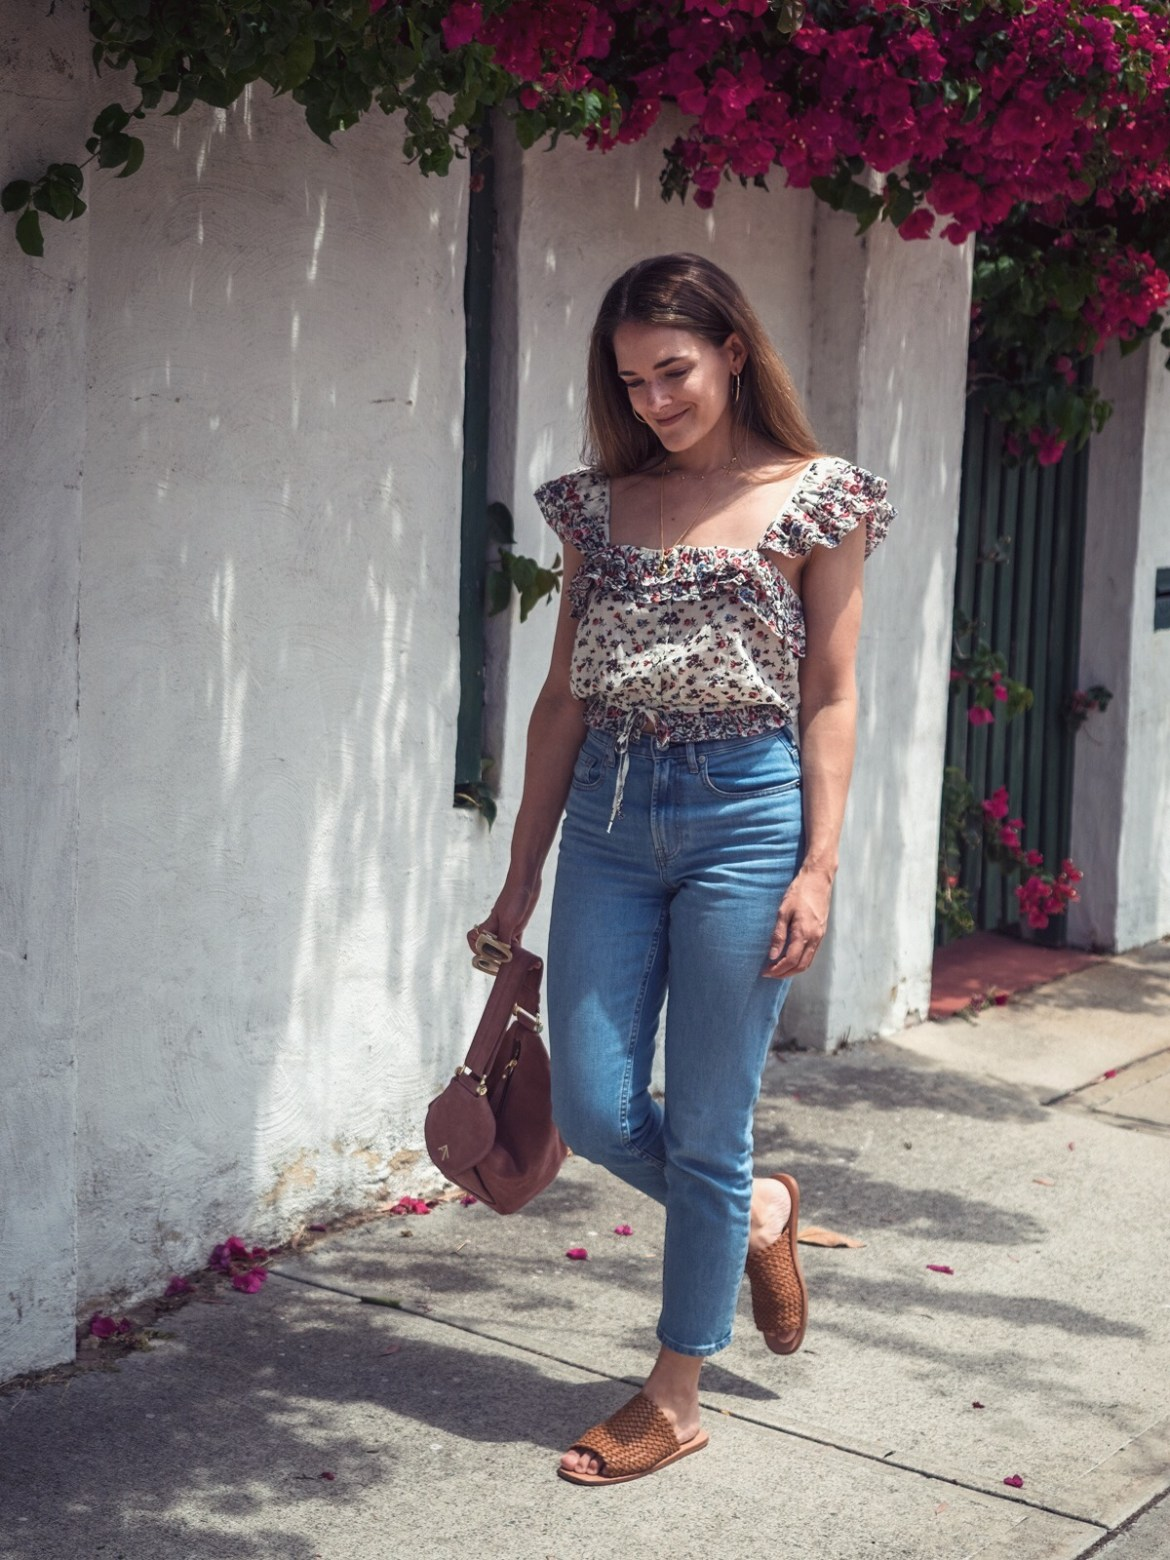 Loveshackfancy crop top worn by fashion blogger Jenelle Witty from @inspiringwit Inspiring Wit with Everlane mom jeans and tan woven sandals summer outfit idea